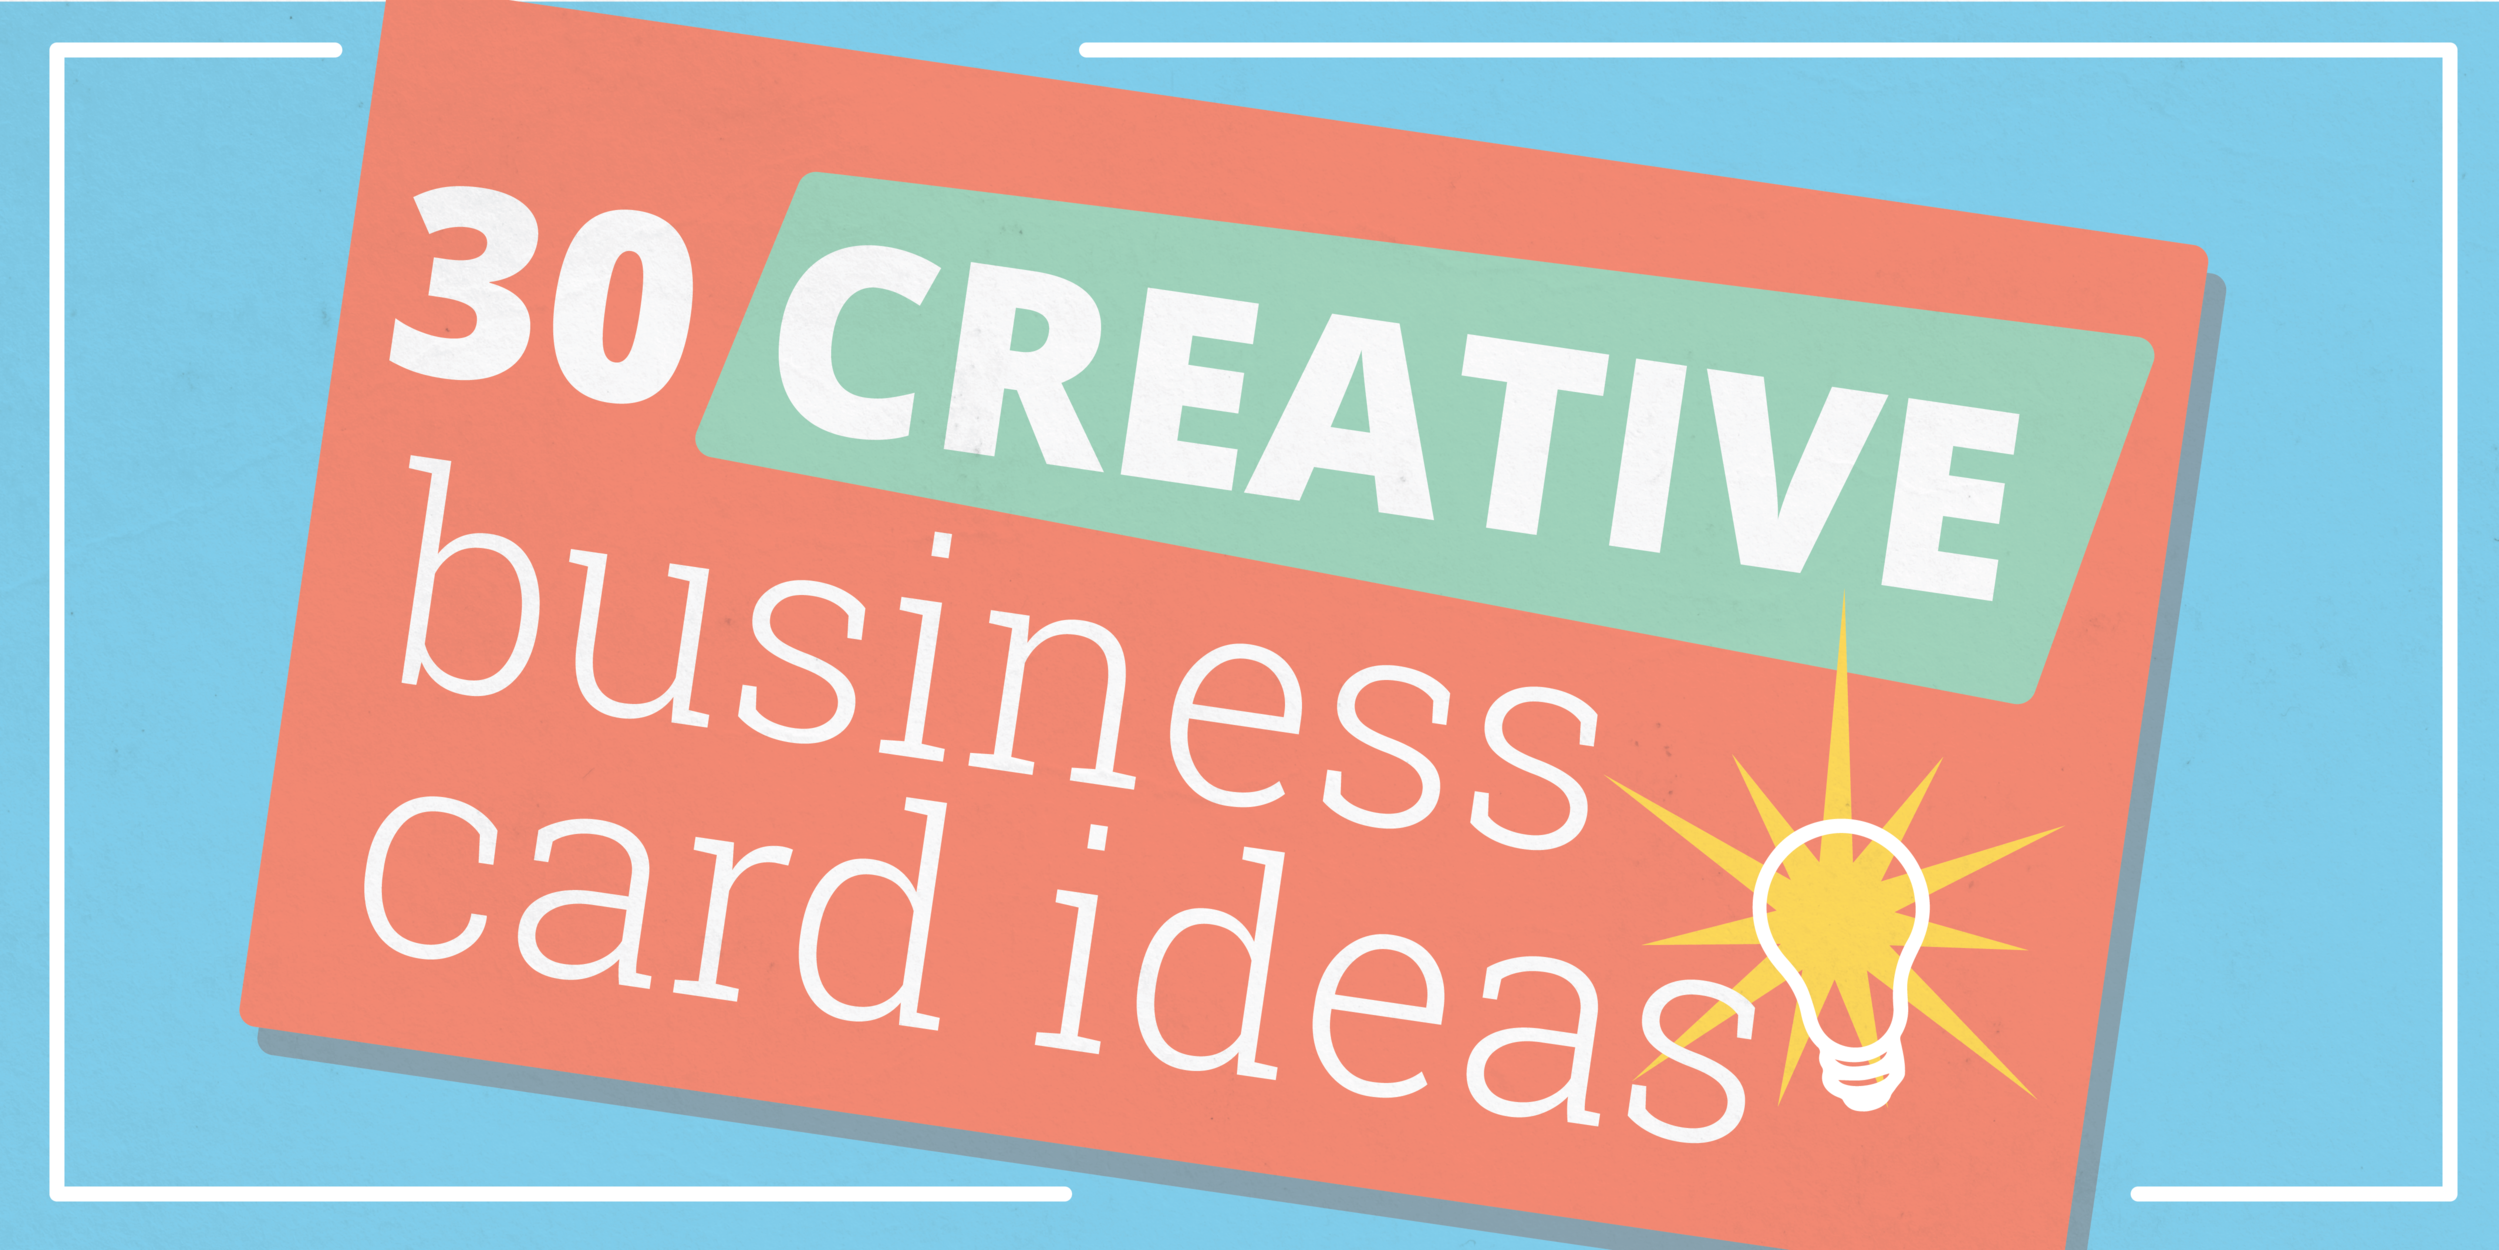 30 creative business card ideas designs lucidpress reheart Choice Image